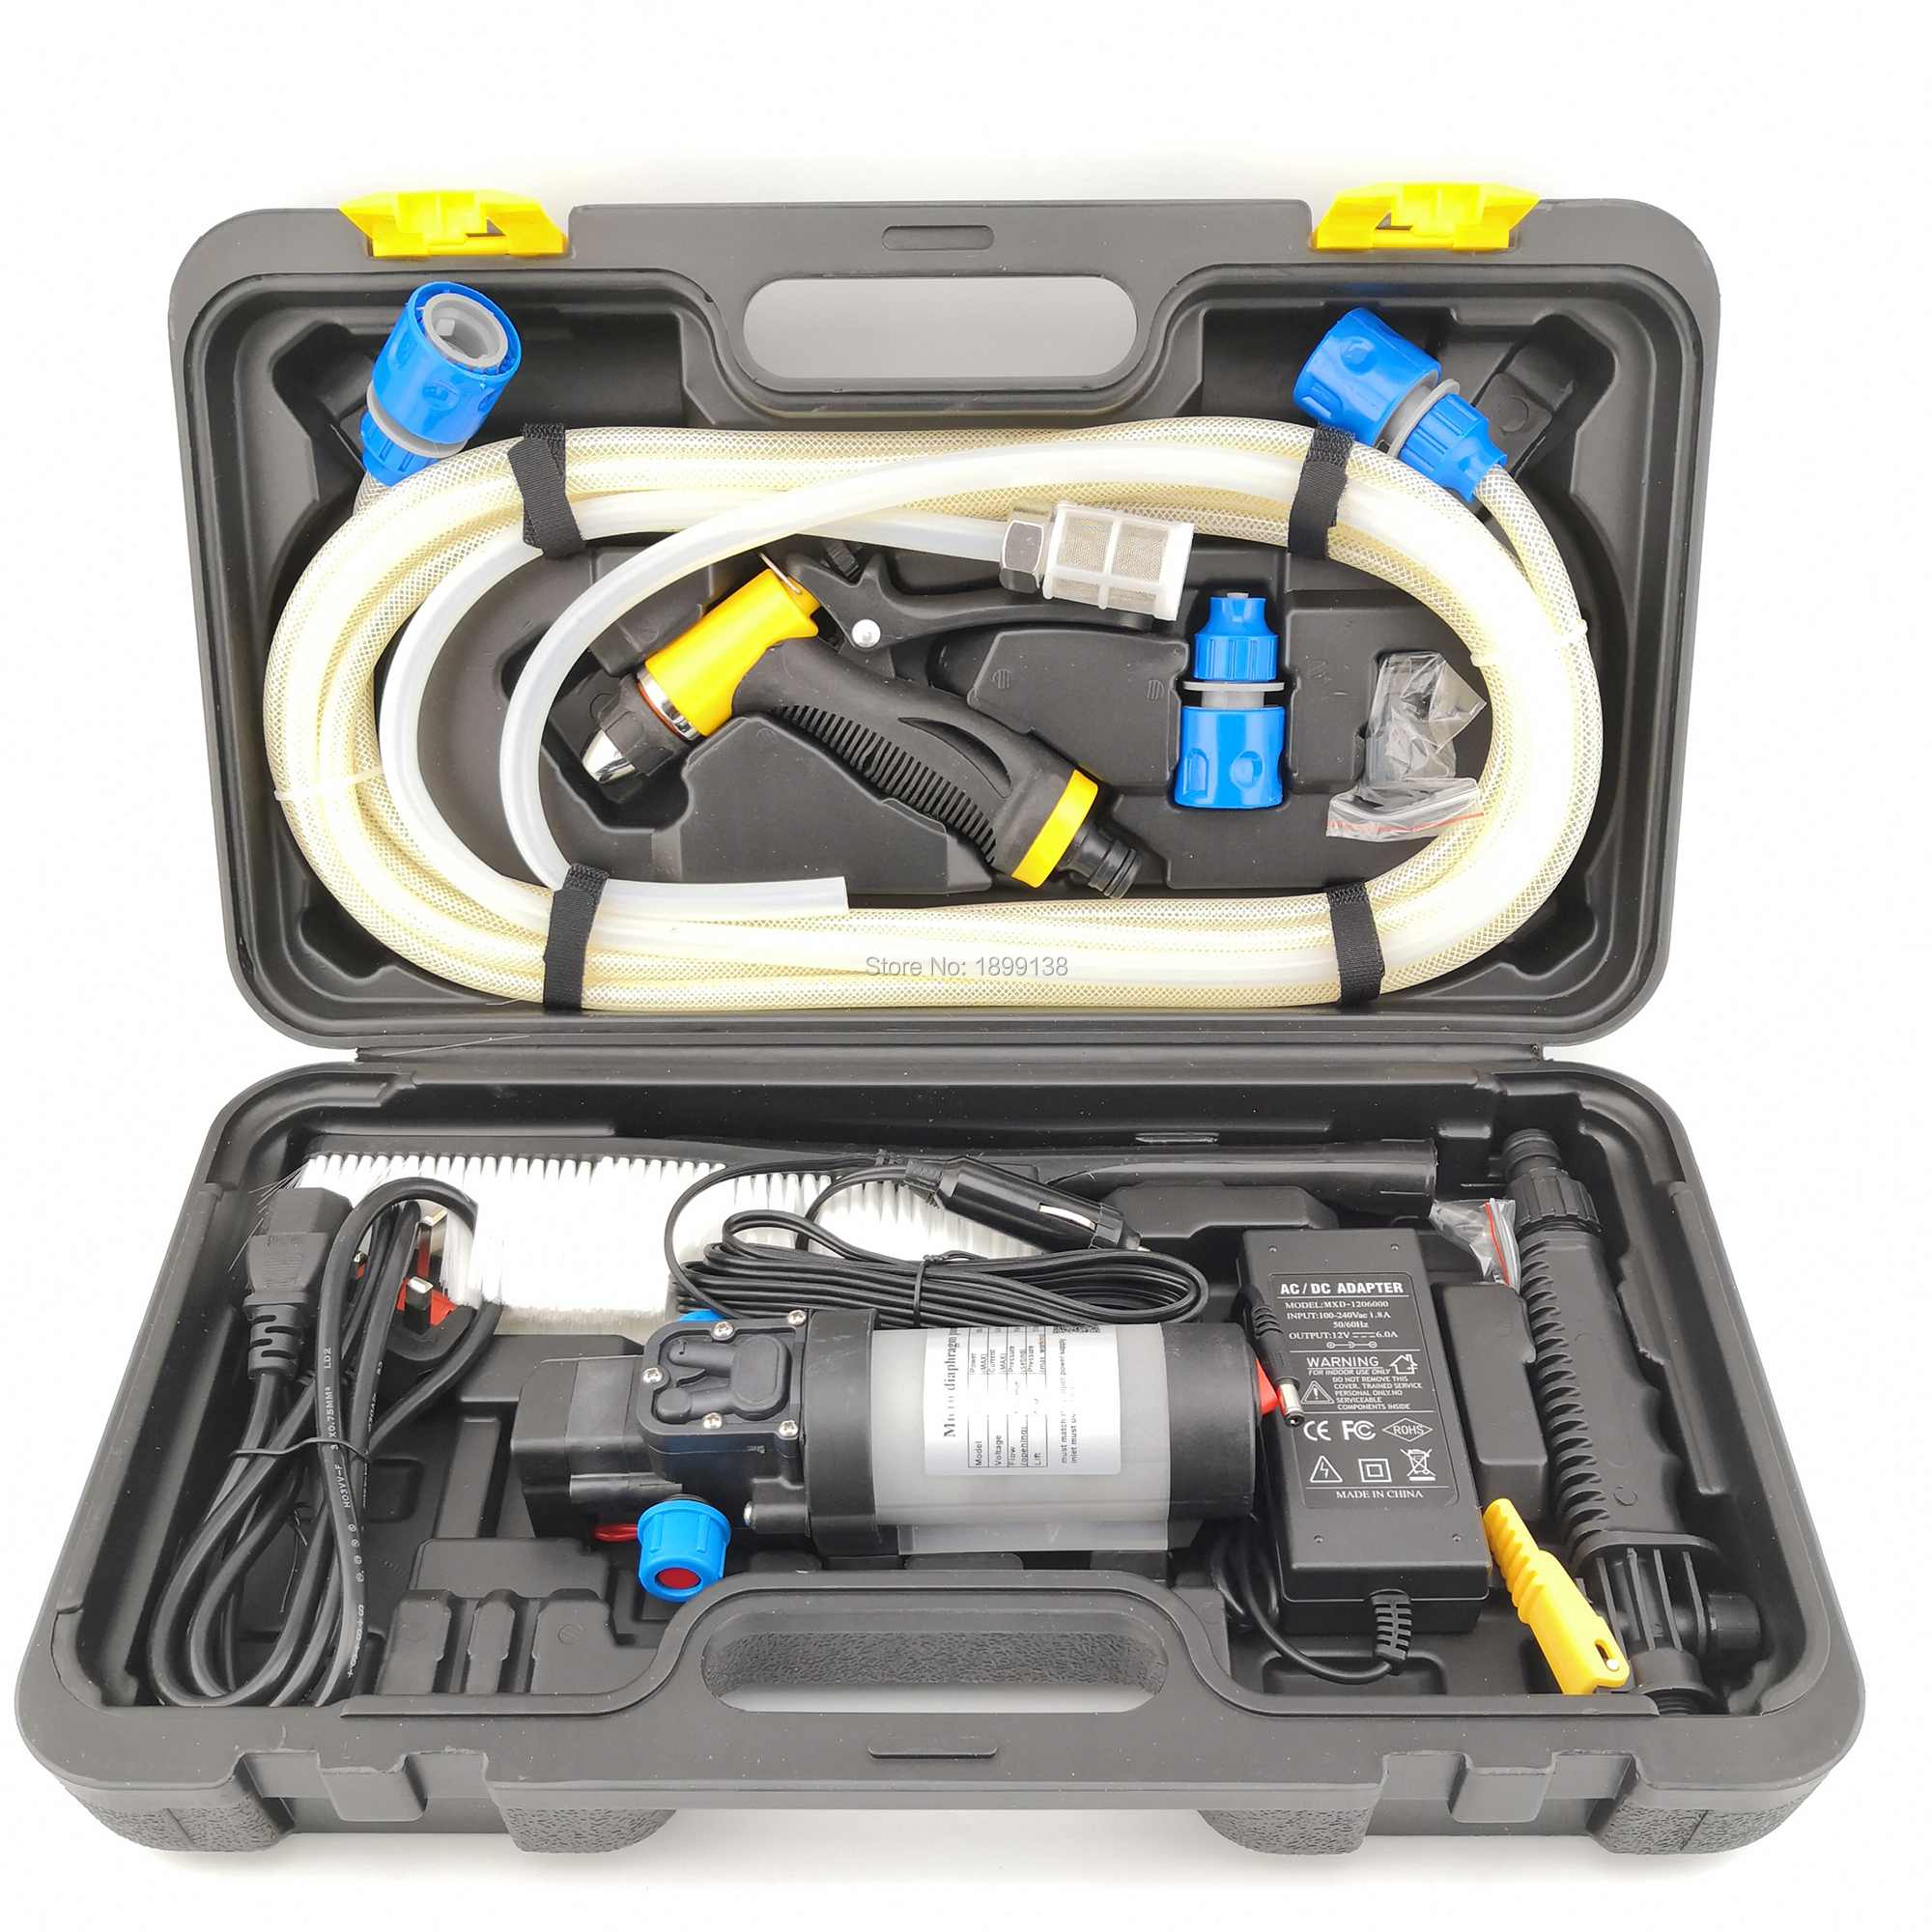 80W Mini High Pressure Car Washer Portable DC 12 Volt 5.5L/min Automatic Pressure Switch Water Pump With 2 Adapters